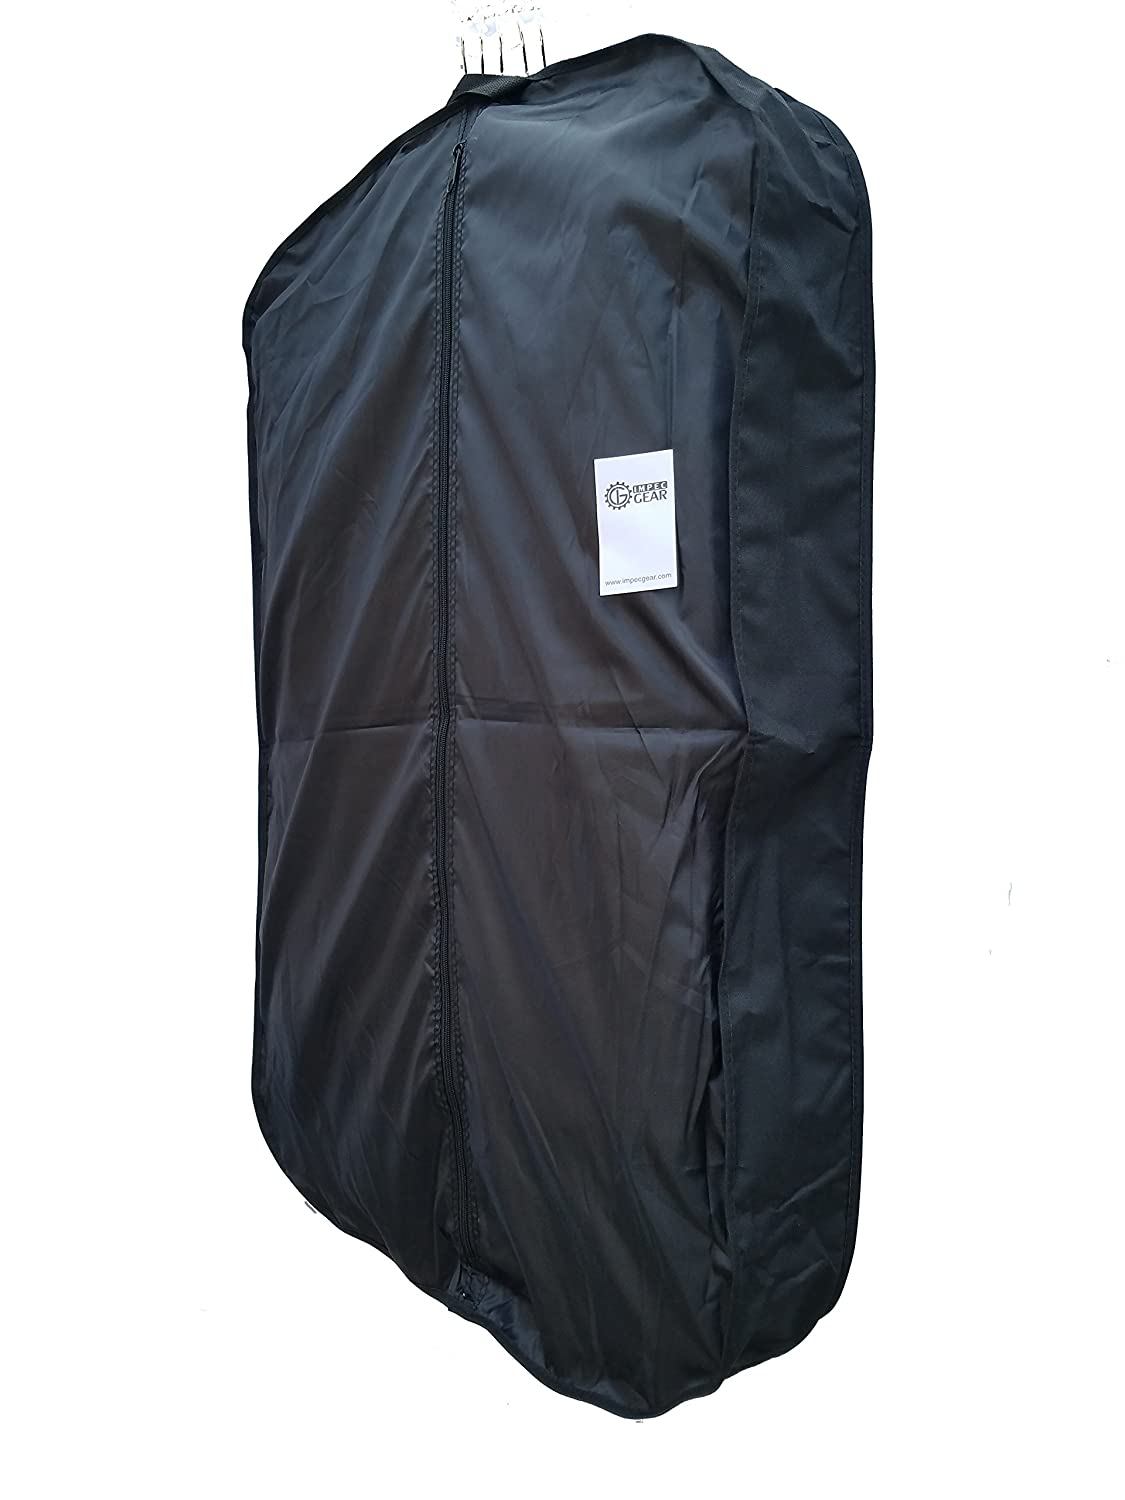 39 Business Garment Bag Cover Suits /& Dresses Clothing Foldable w Pockets